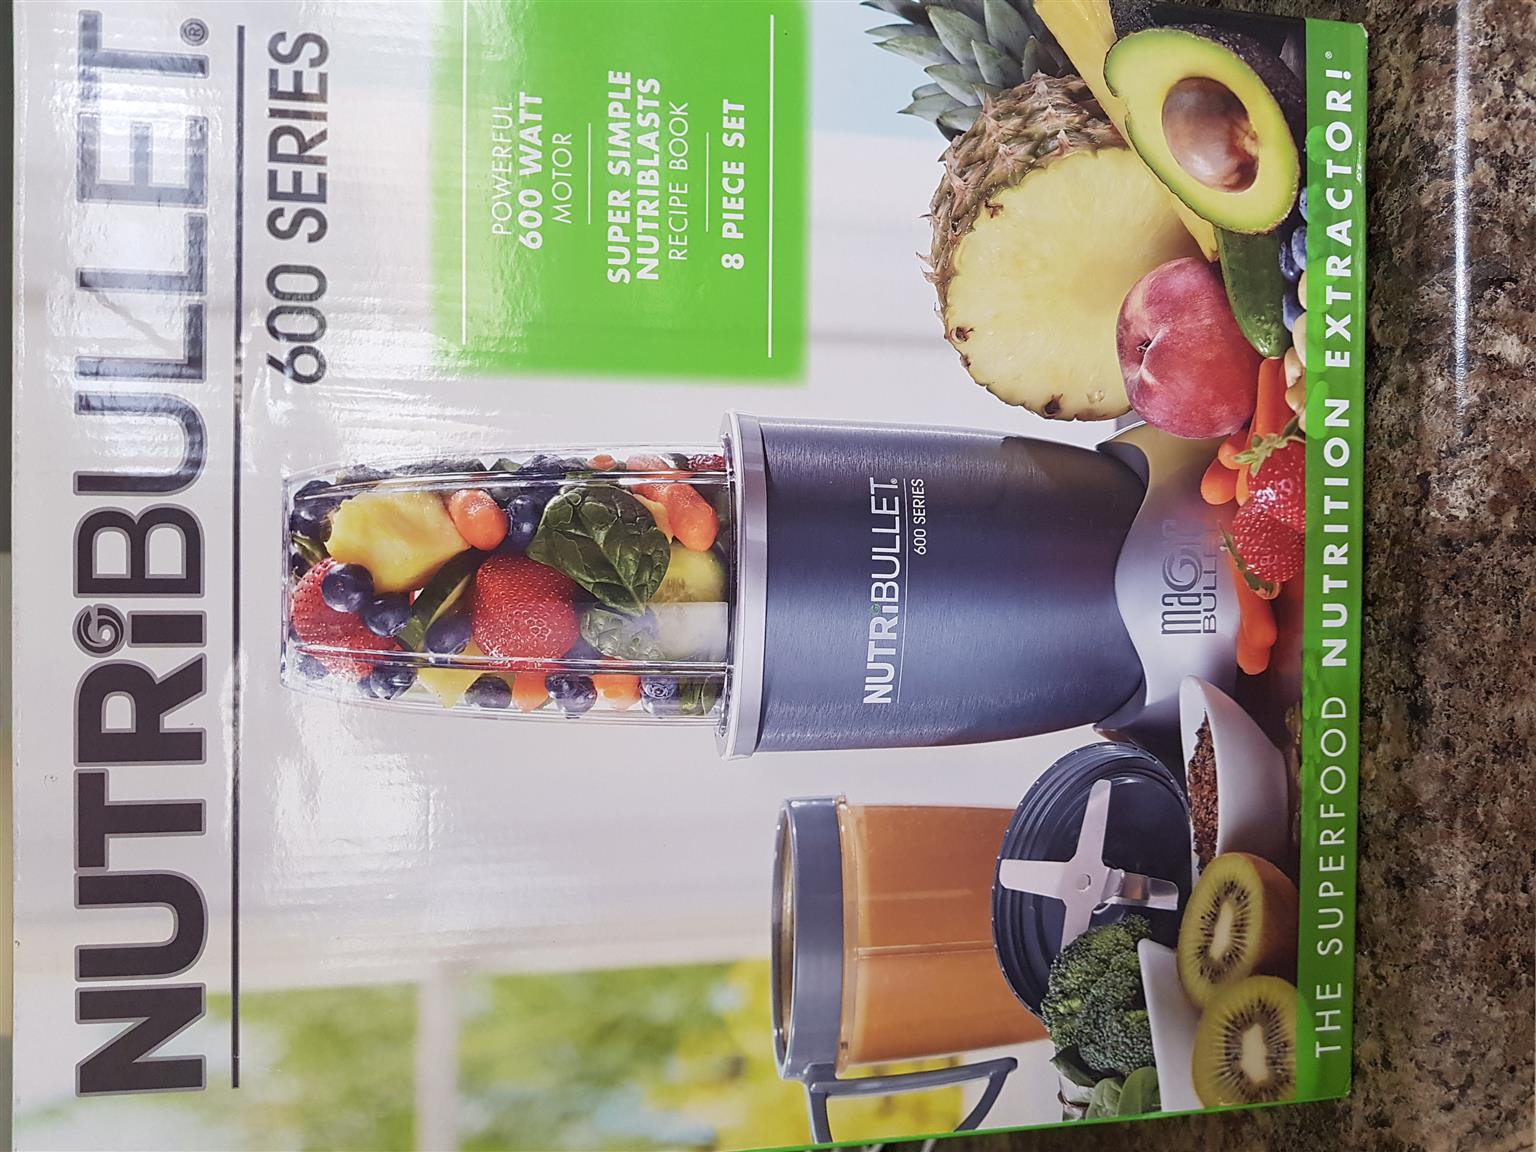 Brand new Nutribullet 8 piece